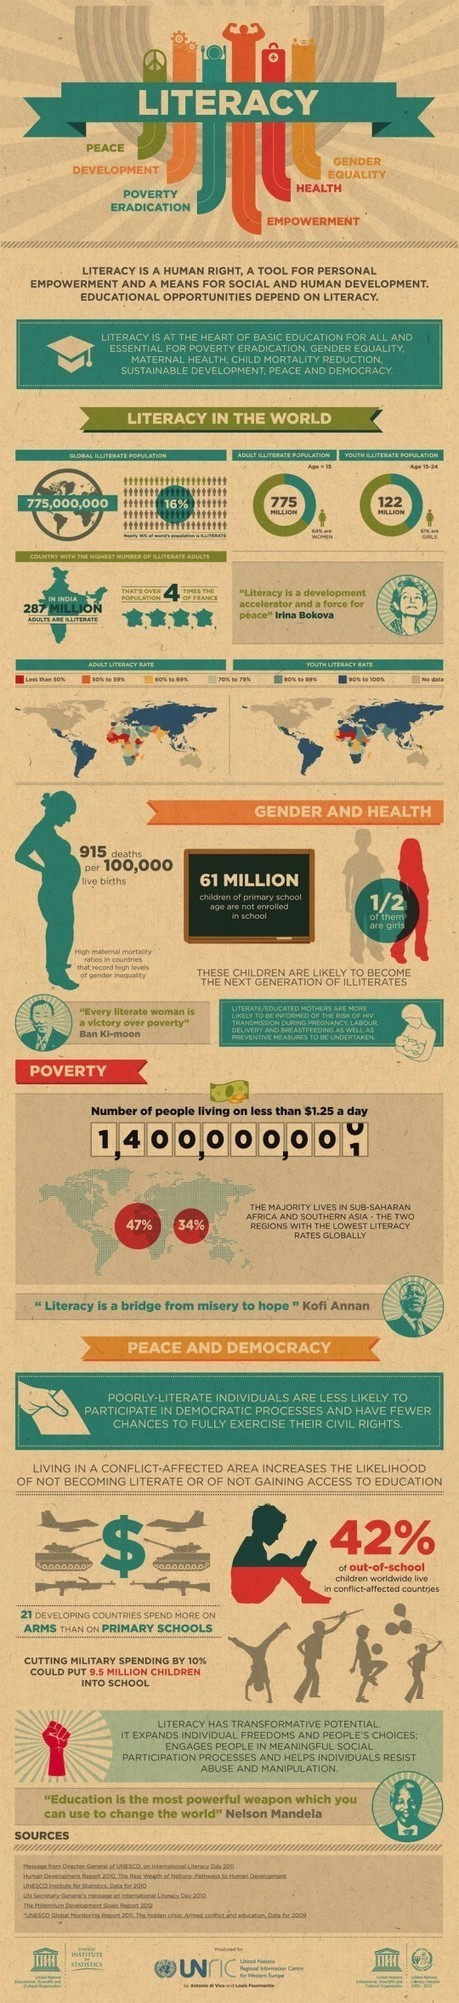 Literacy in the world [infographic] | Media literacy | Scoop.it